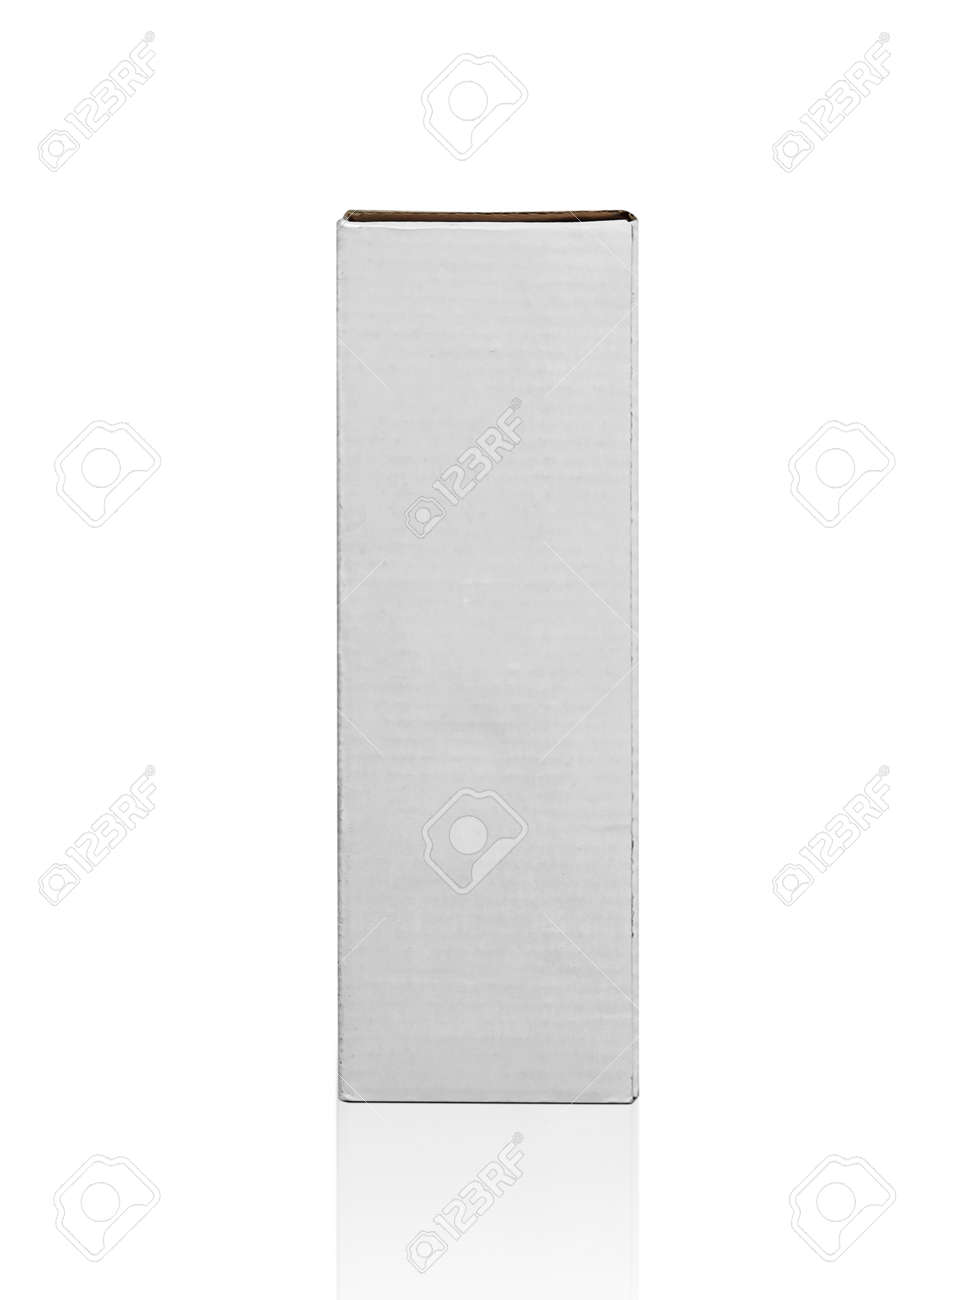 blank packaging white cardboard box isolated on white background ready for packaging design - 166926236